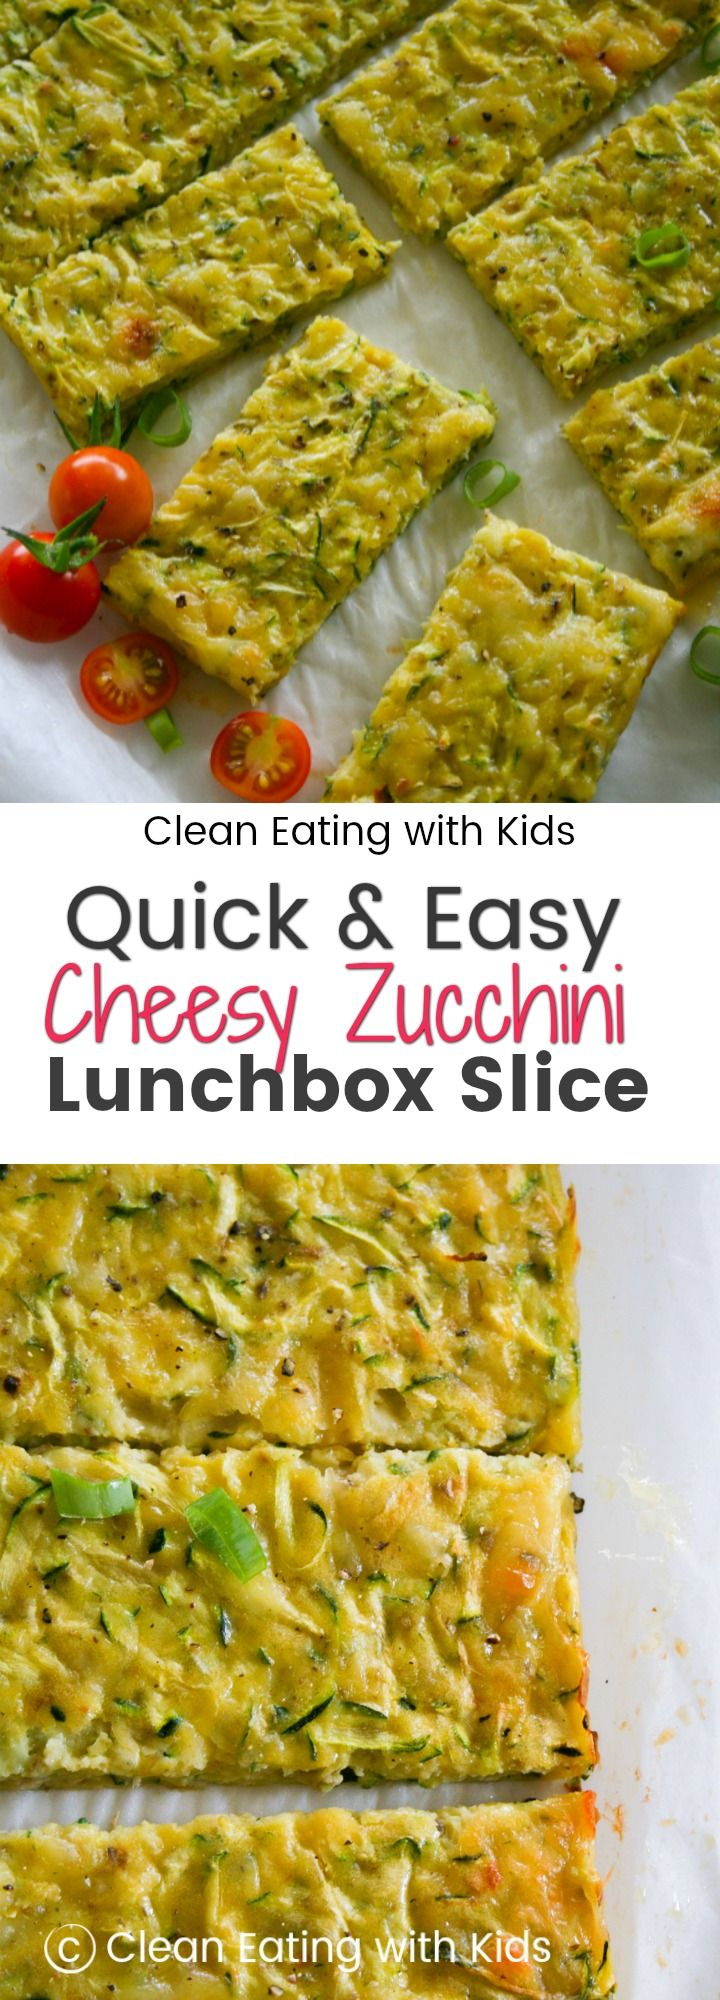 Tired of deciding What to put in School Lunchbox? Take a look at the really easy Cheesy Zucchini Lunchbox slice. Basic ingredients, healthy and extremely tasty! #cleaneating #backtoschool #lunchbox